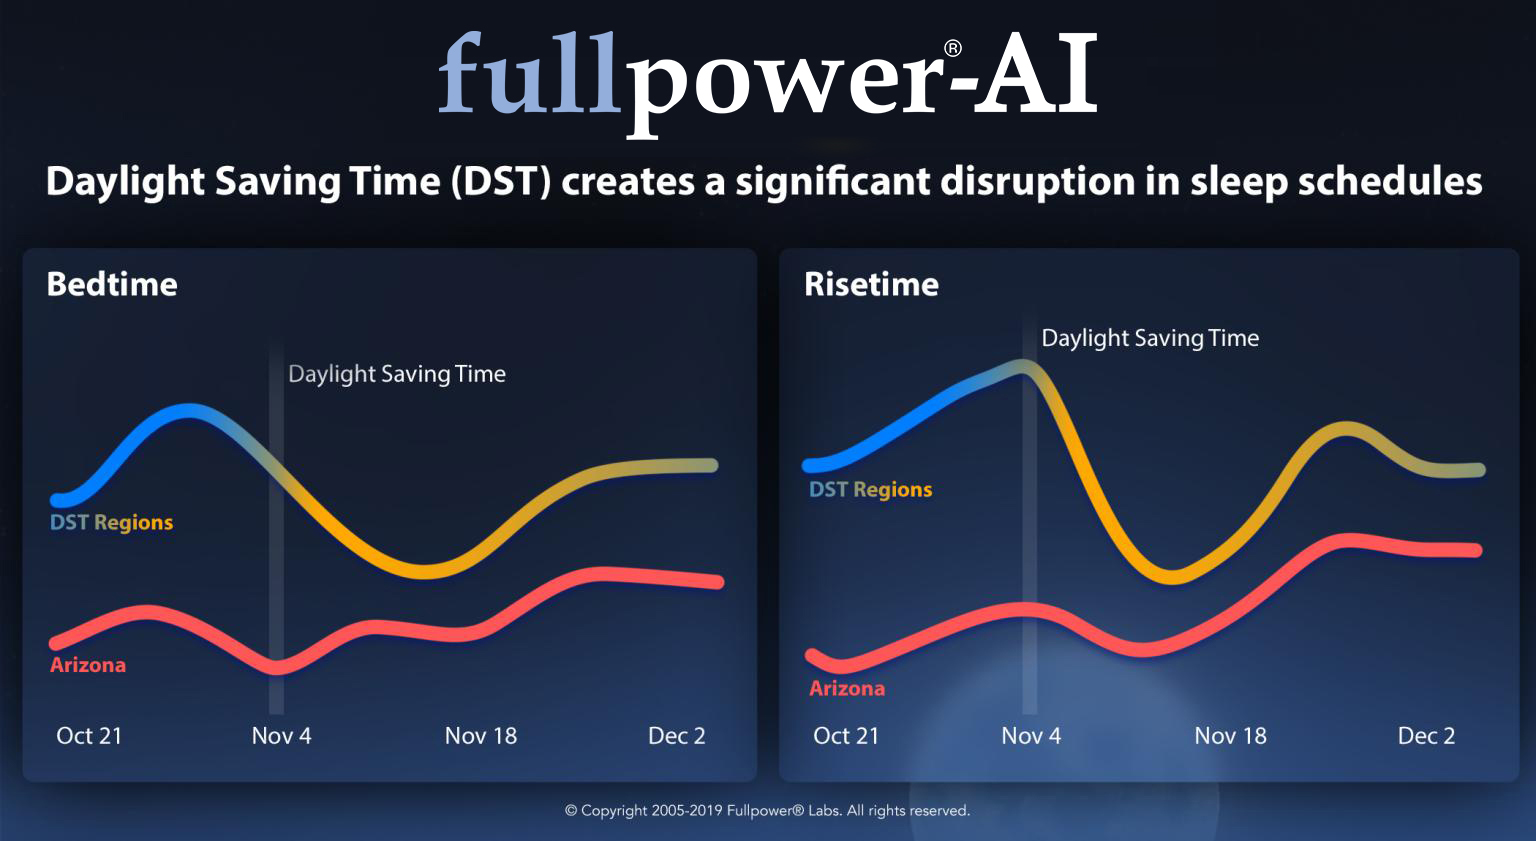 daylight-saving-time-dst-creates-a-significant-disruption-in-sleep-schedules